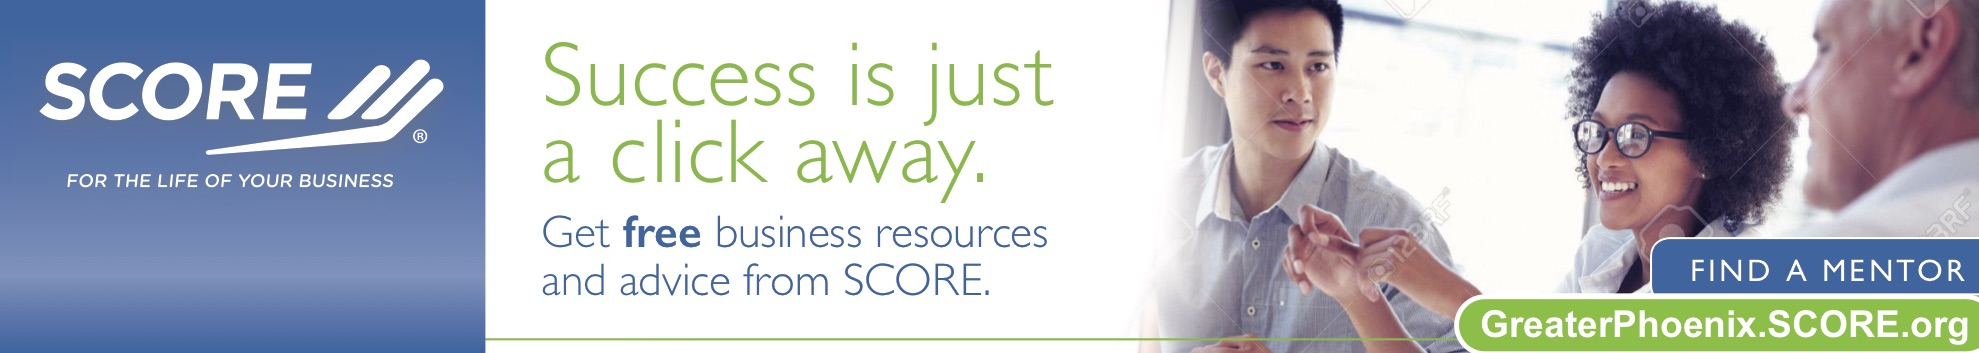 Meet with a SCORE Mentor for free Business Help